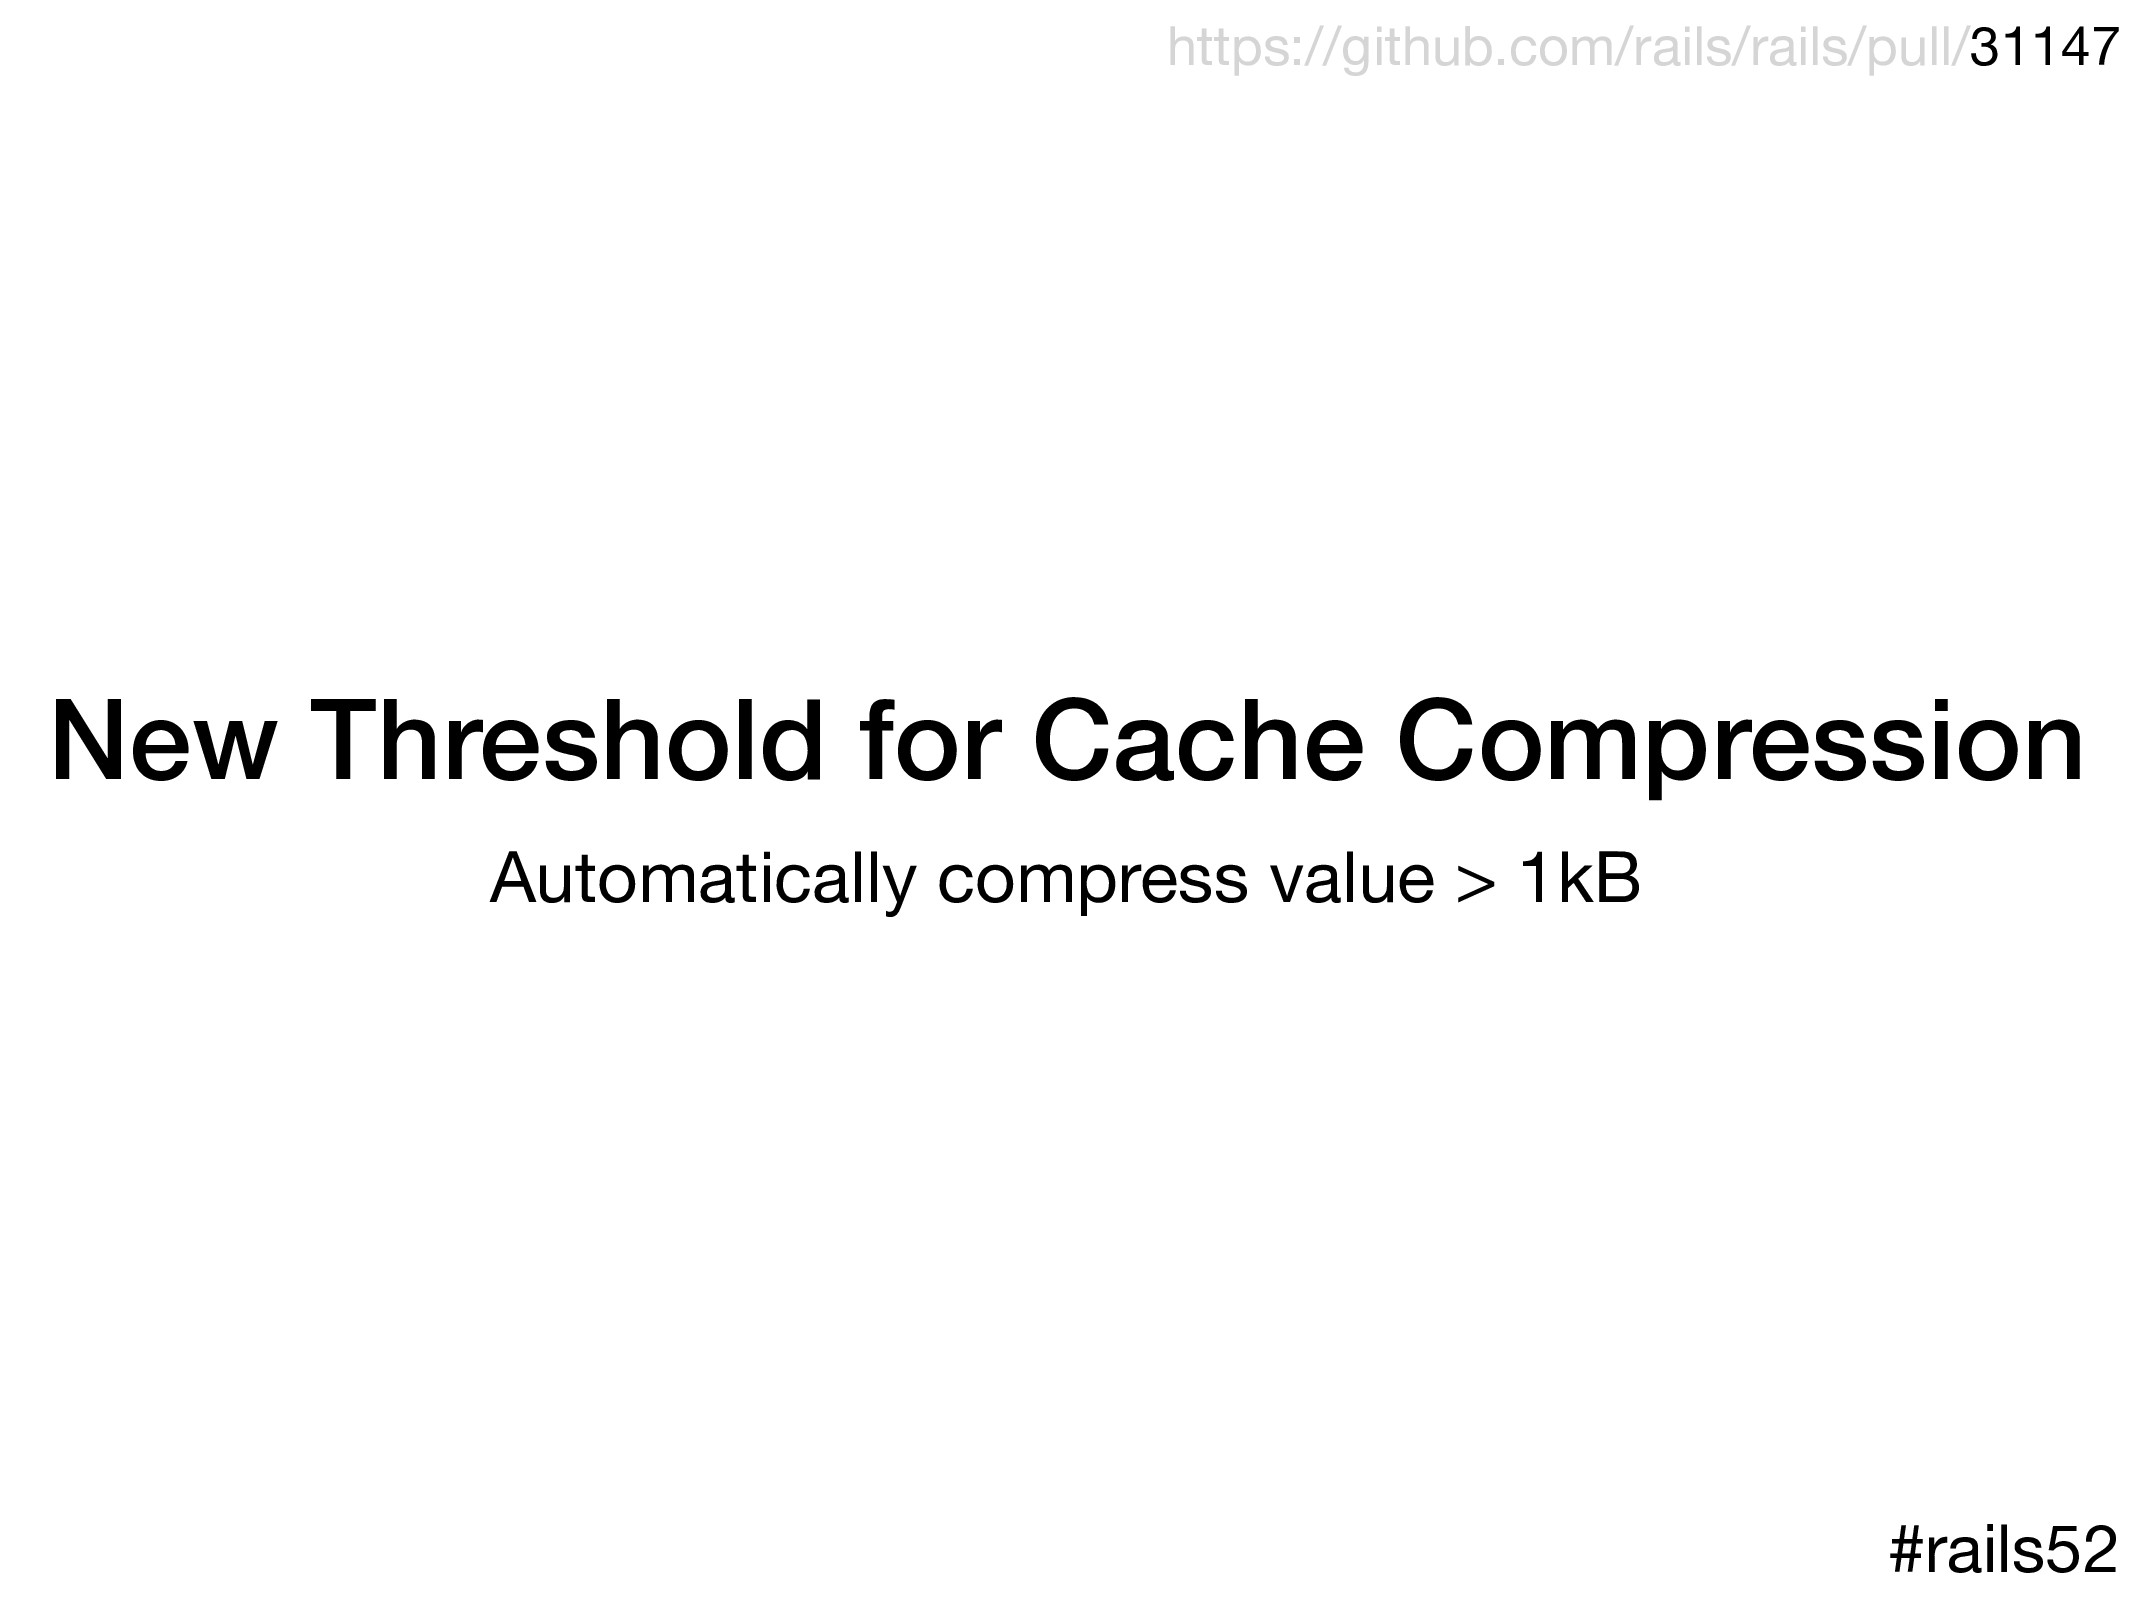 New Threshold for Cache Compression Automatical...